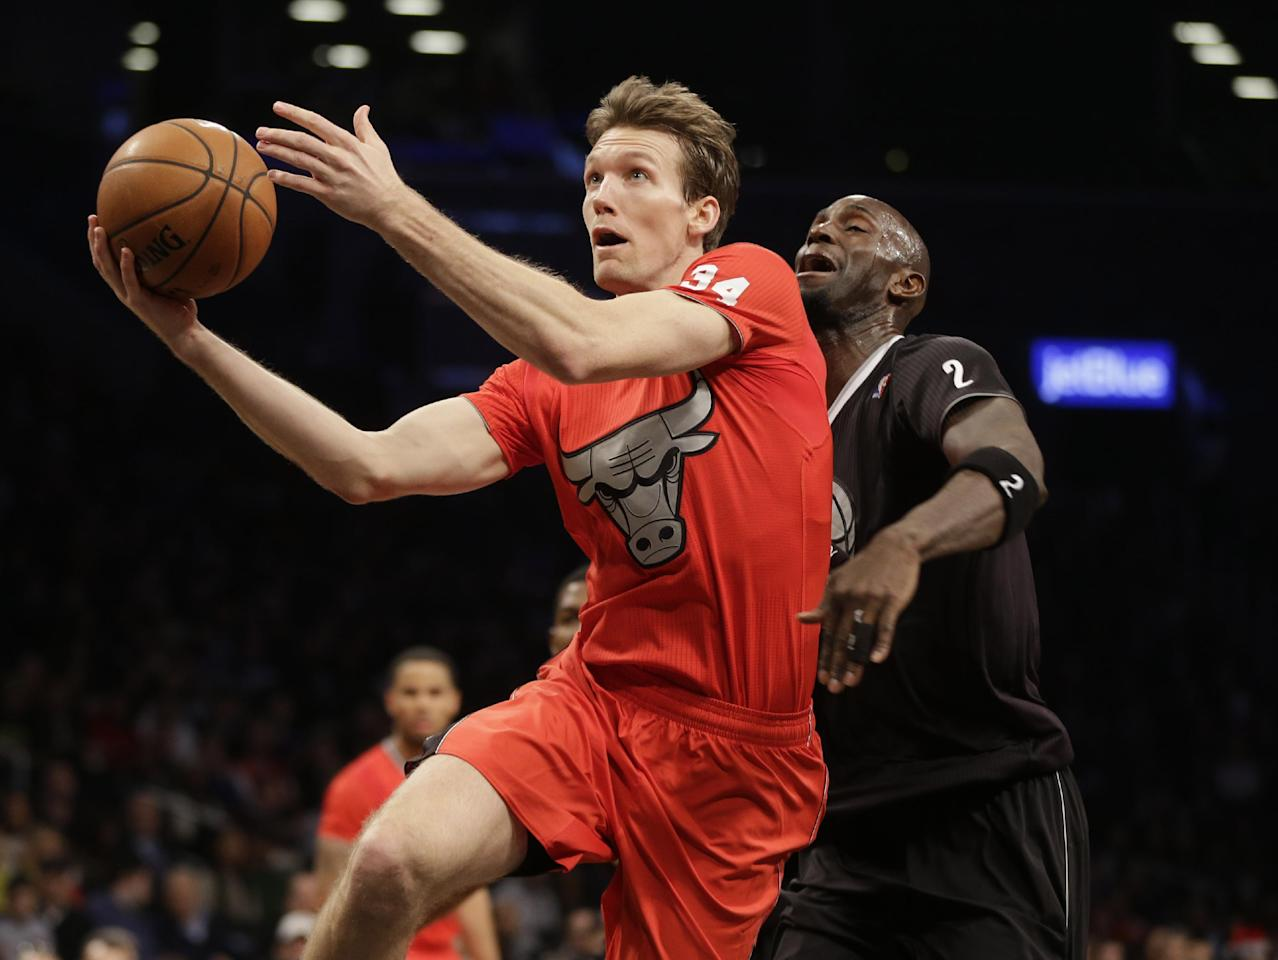 Chicago Bulls' Mike Dunleavy, left, drives to the basket past Brooklyn Nets' Kevin Garnett during the first half of the NBA basketball game at the Barclays Center Wednesday, Dec. 25, 2013, in New York. (AP Photo/Seth Wenig)